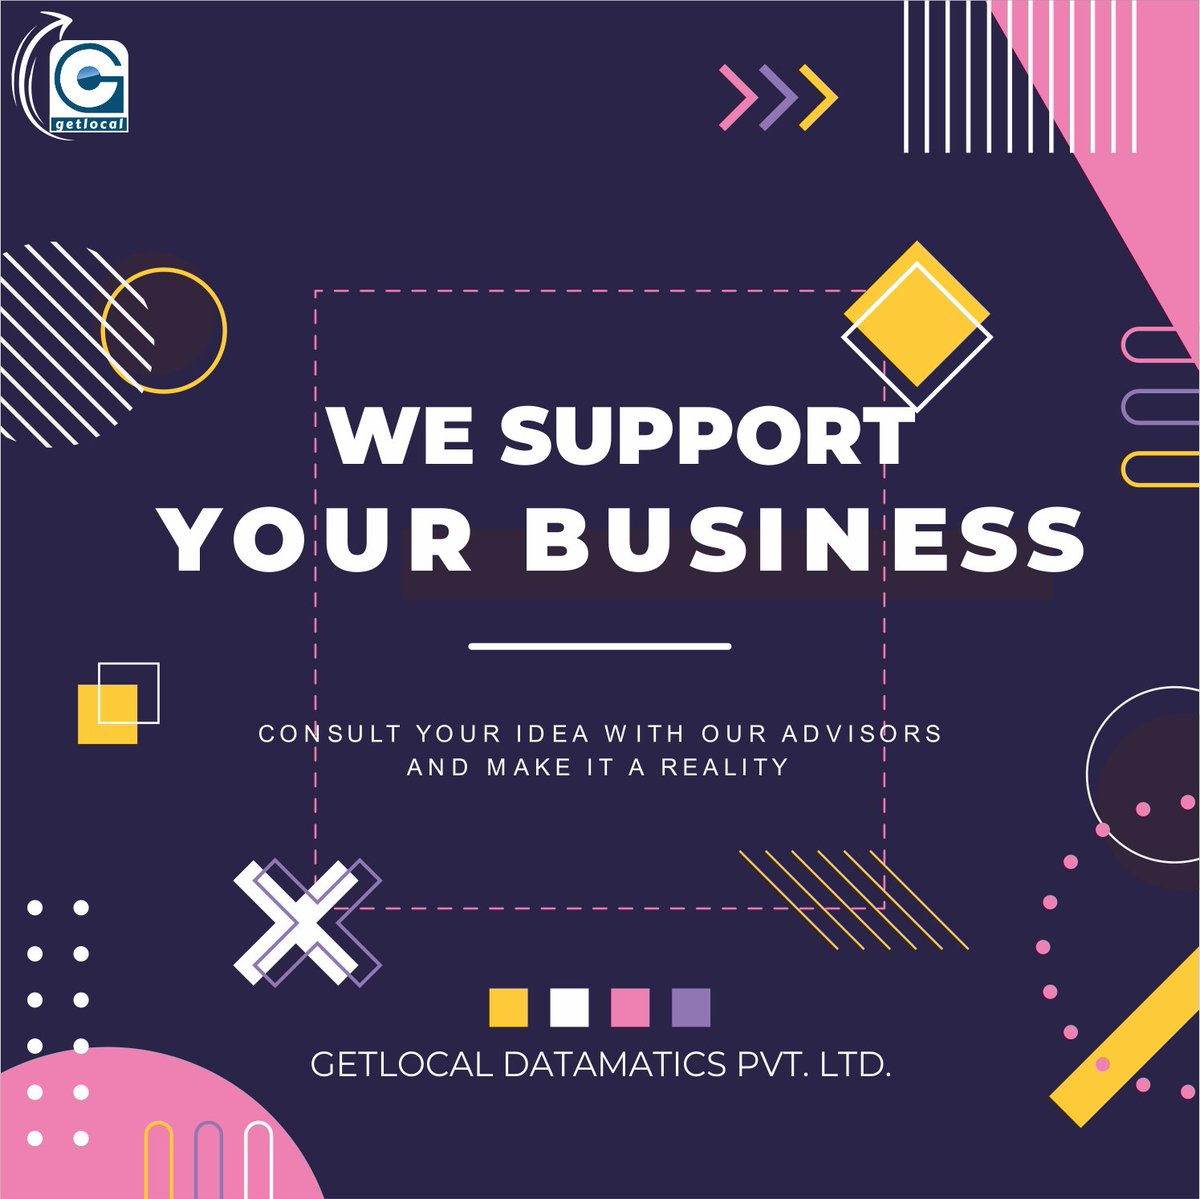 Confused about #businessmodel, #businessstrategy, #distributionmodel, #productdesign , #productionprocess, #productdesign. Don't worry, we support your #business . Just consult your #ideas , & turn them into reality. #getlocaldatamatics https://t.co/n25CIUN7JT